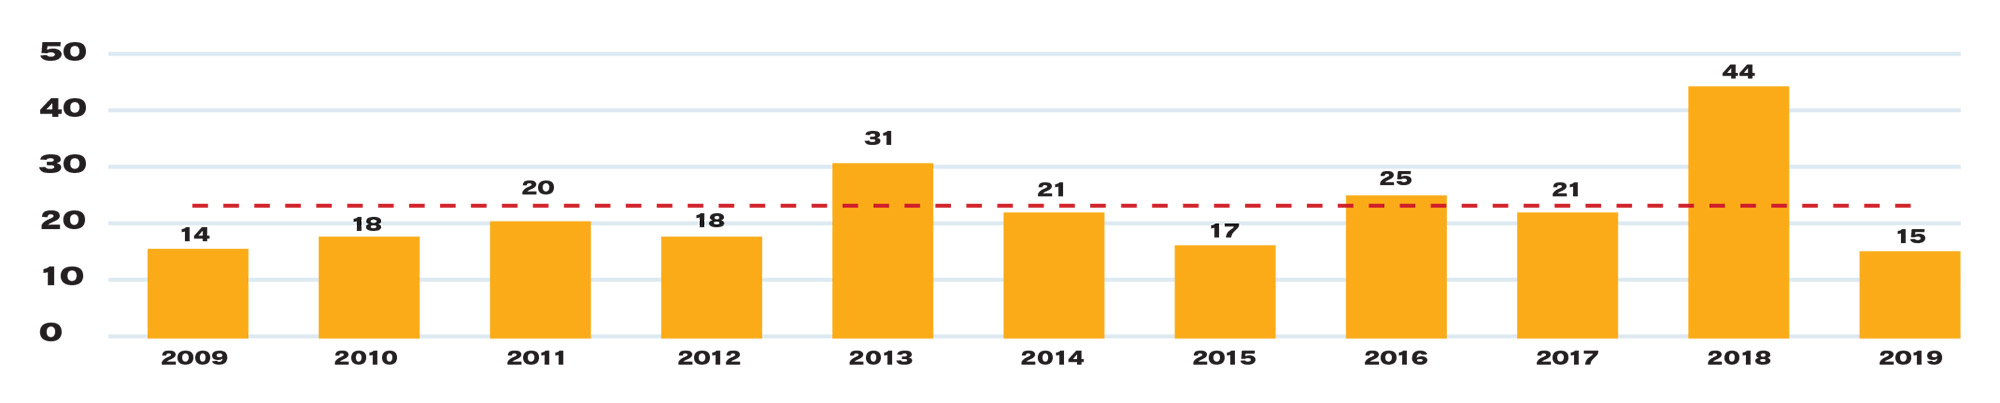 * Red line indicates 10-year mean of 22.9. Source: Phoenix Police Department